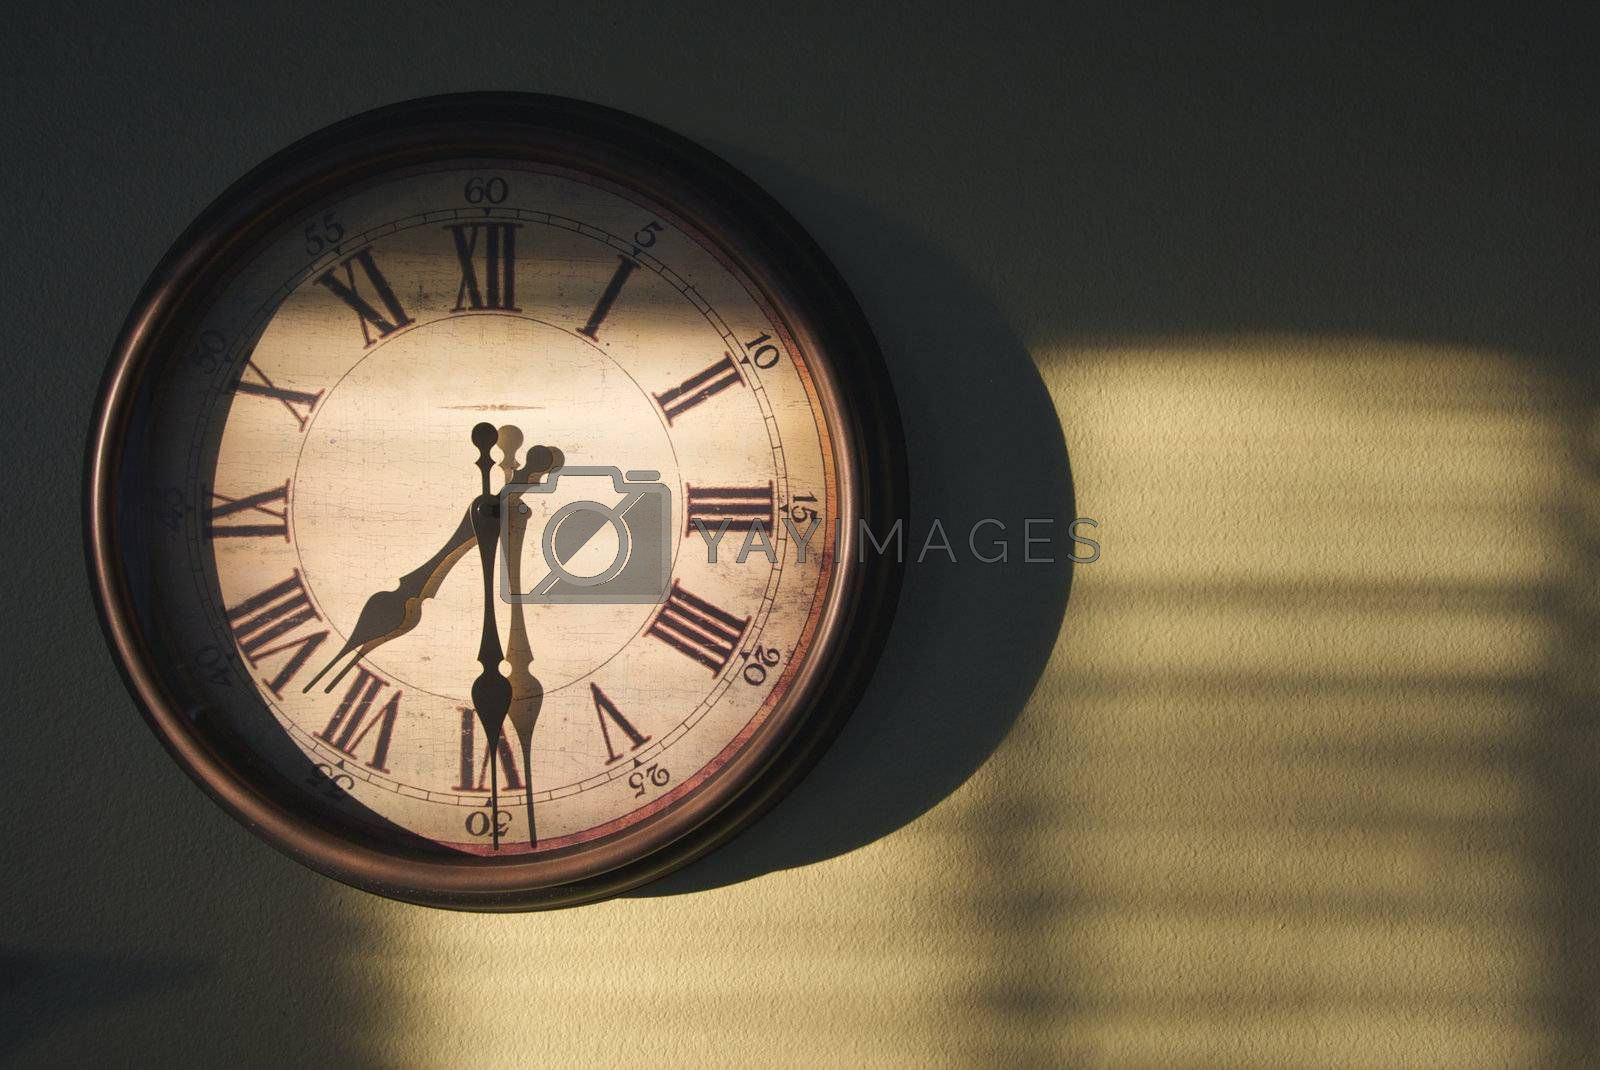 Antique Clock on an olive green wall with dramatic evening light and shadows.